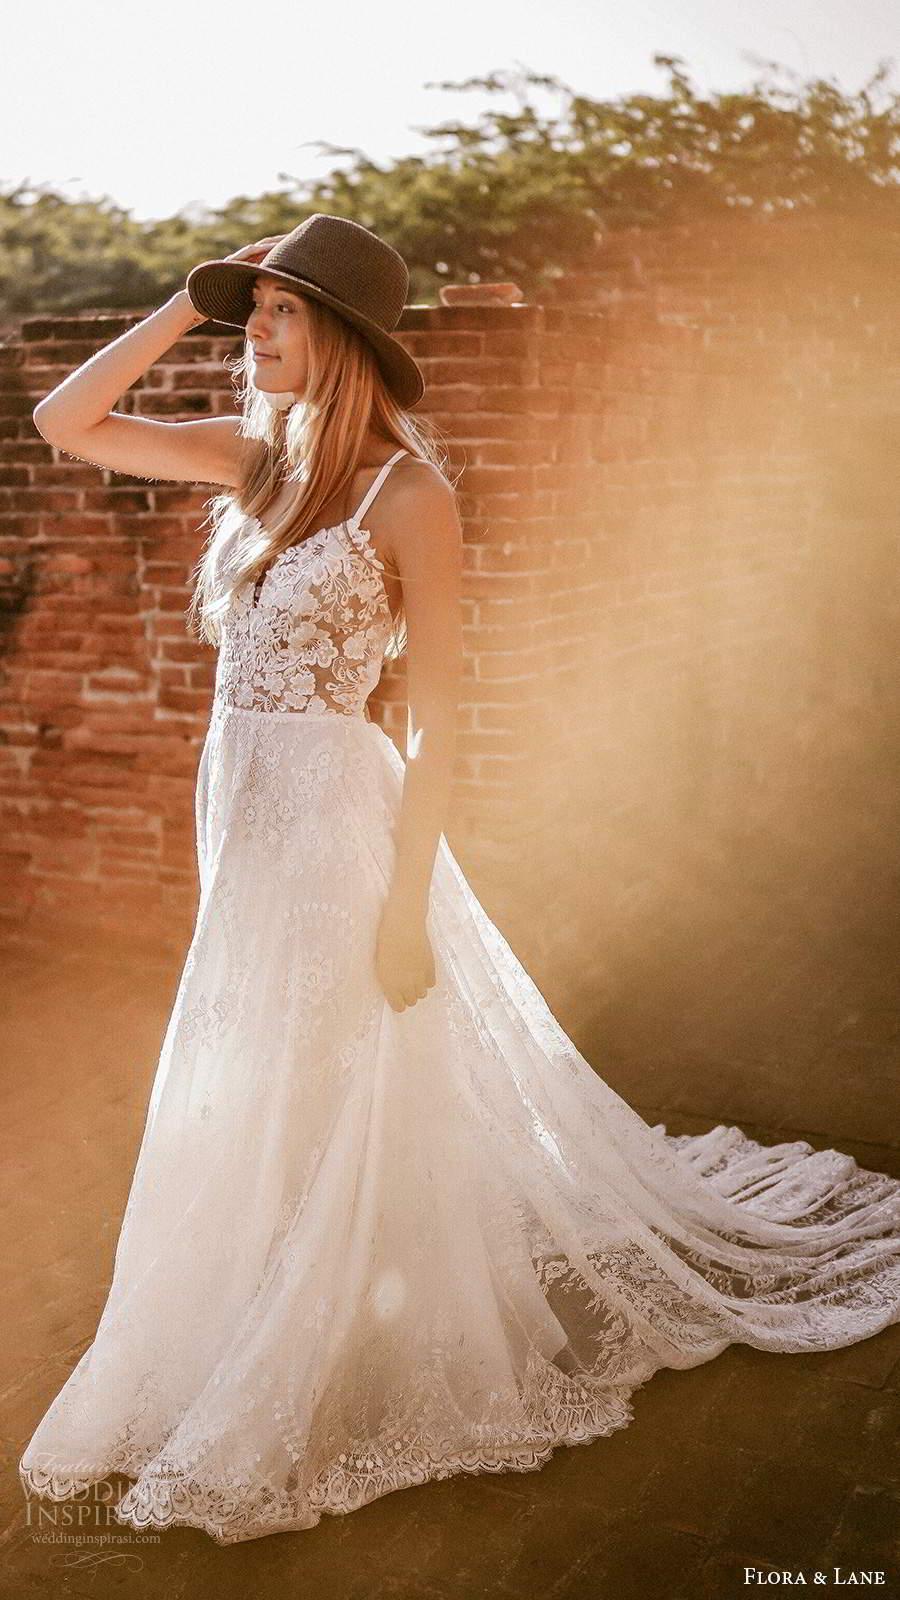 flora and lane 2019 bridal sleeveless straps sweetheart neckline fully embellished lace boho romantic a line ball gown wedding dress open back chapel train (1) zv